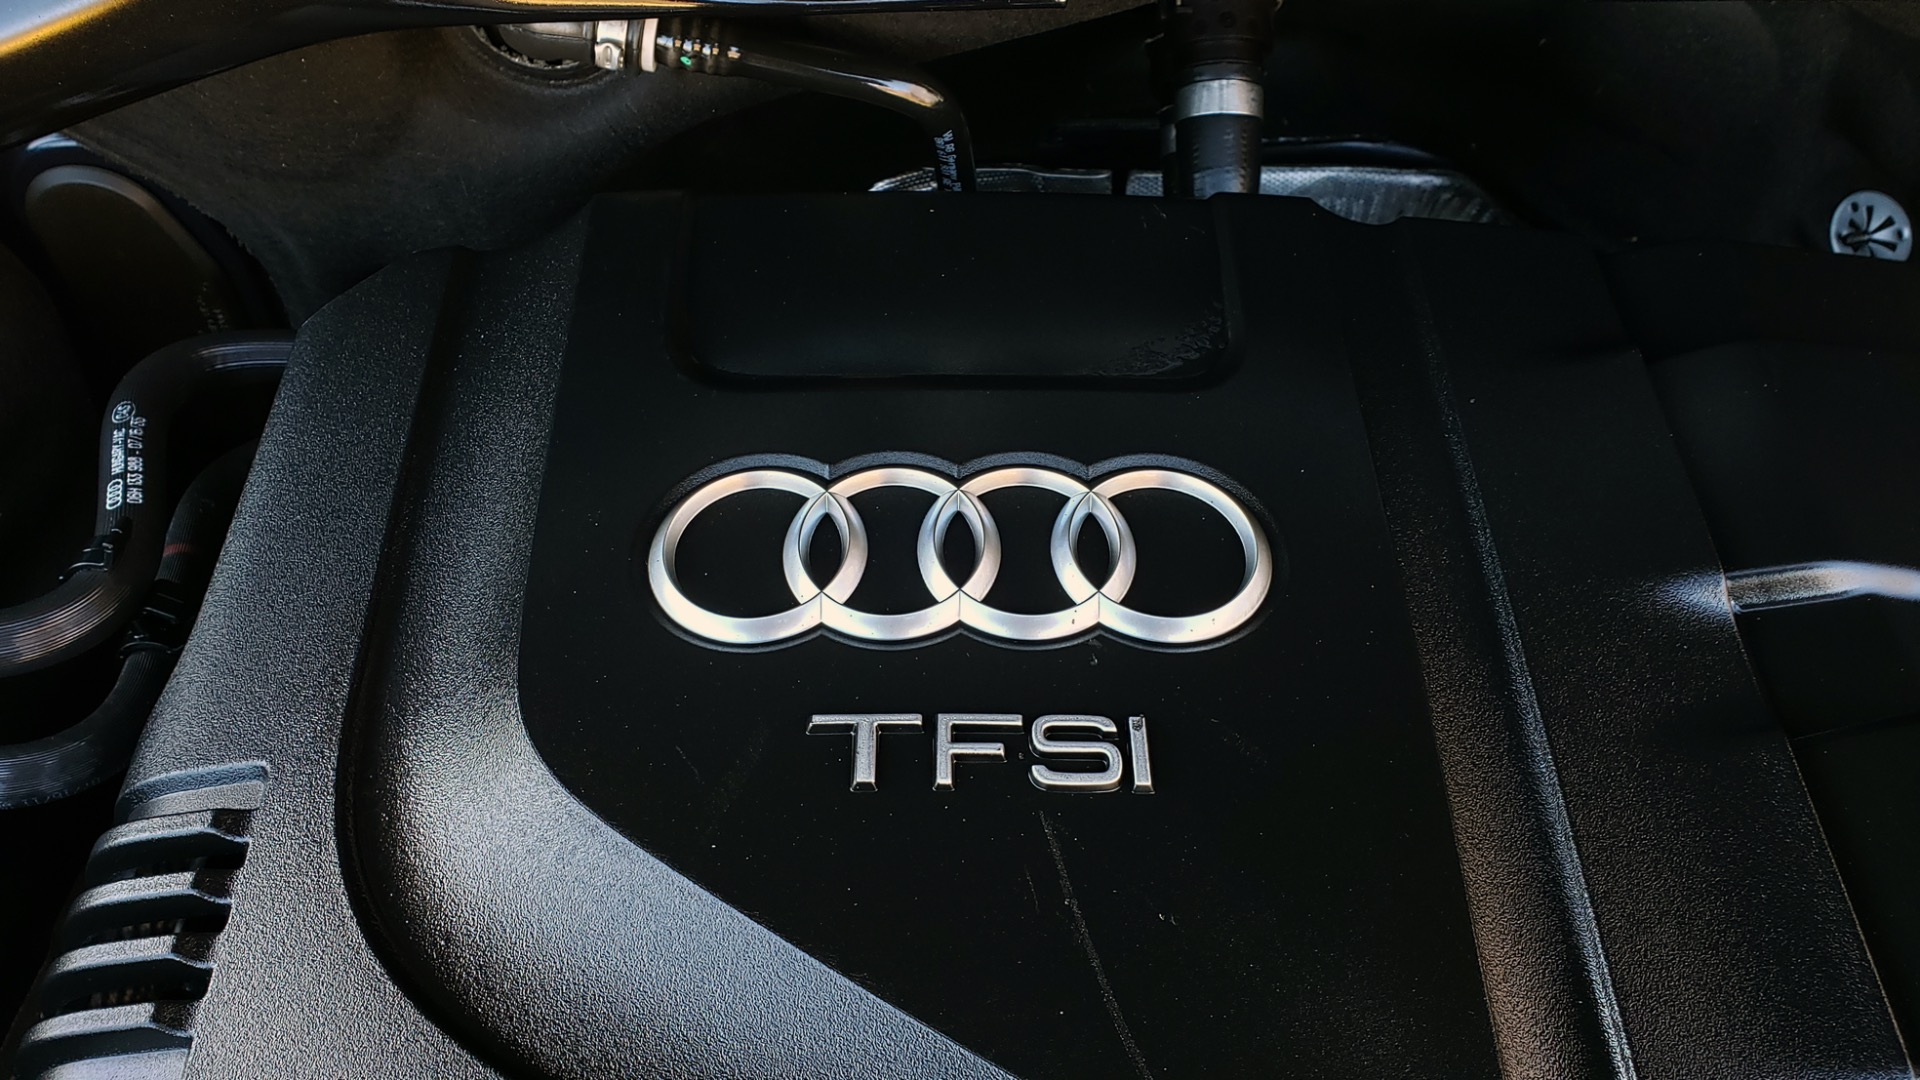 Used 2016 Audi Q5 PREMIUM PLUS 2.0T TIPTRONIC / TECH PKG / NAV / SUNROOF / REARVIEW for sale Sold at Formula Imports in Charlotte NC 28227 21